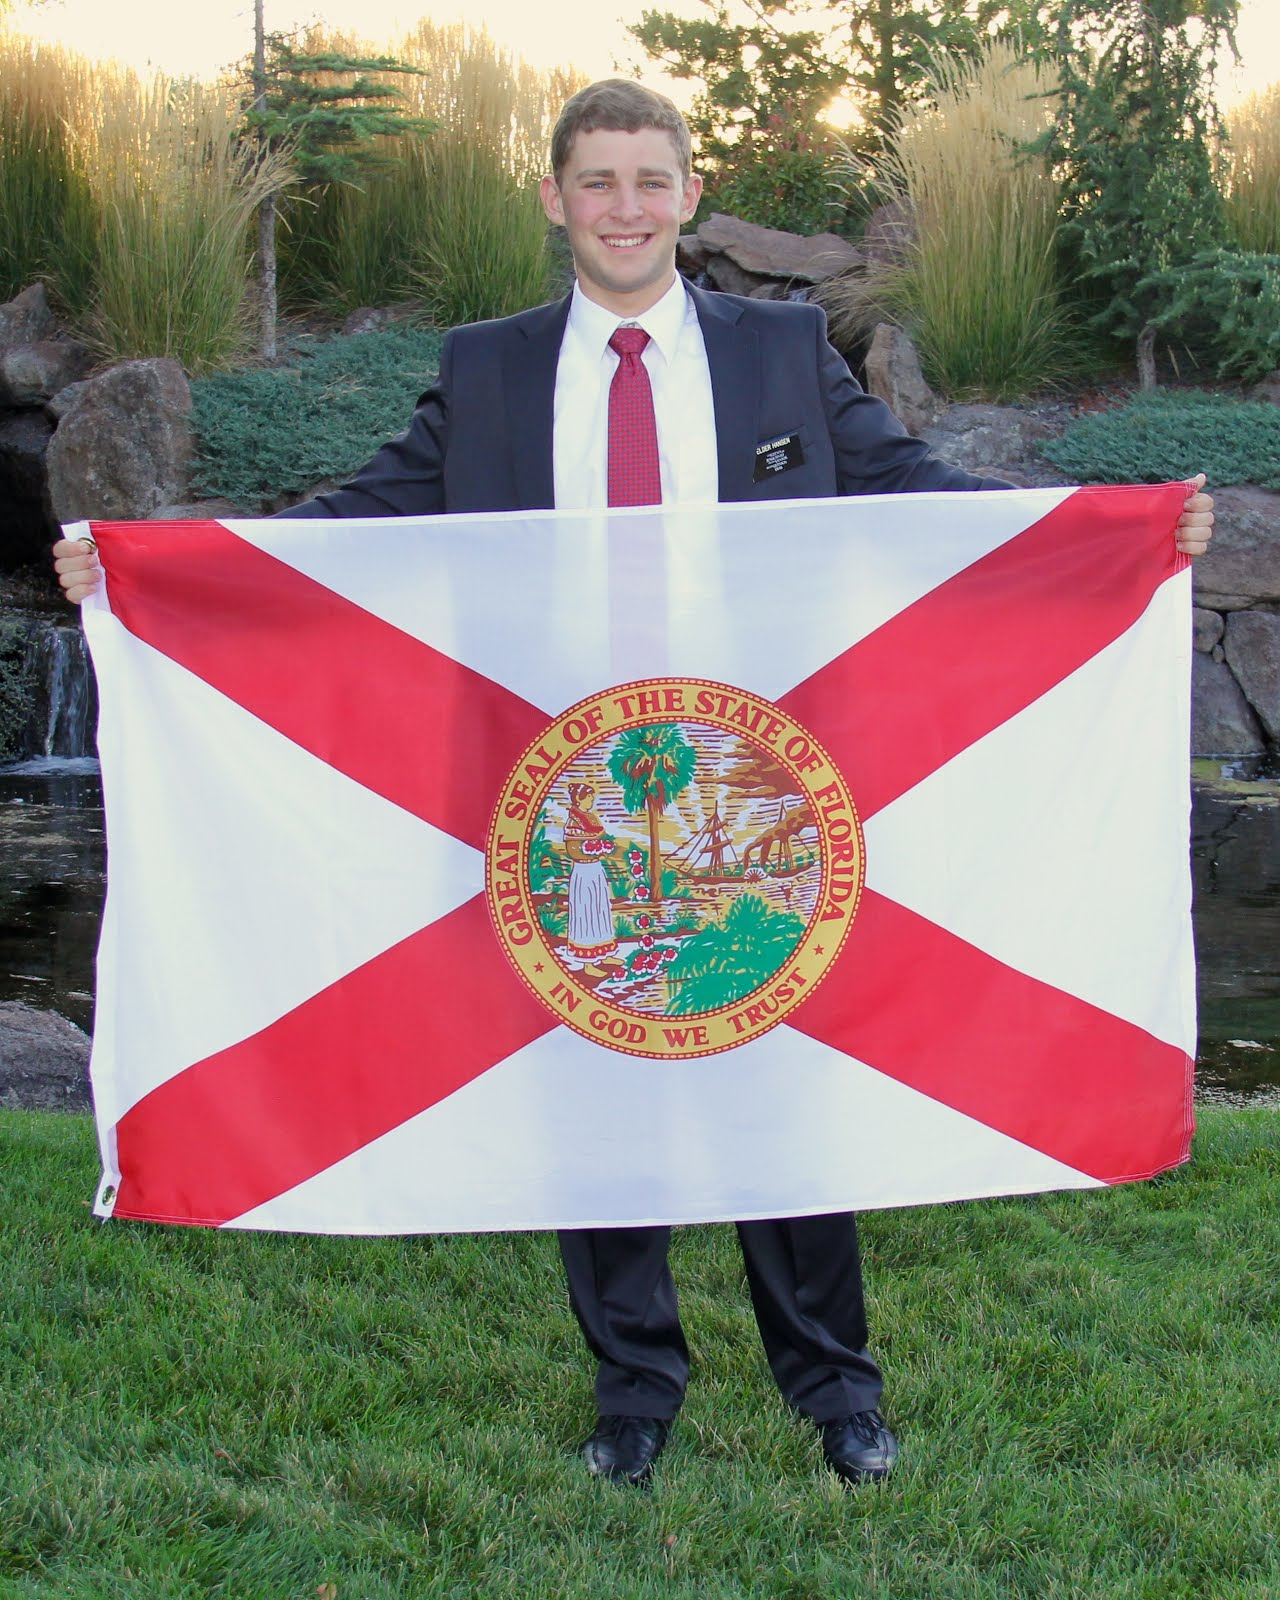 Serving in the Florida Fort Lauderdale Mission